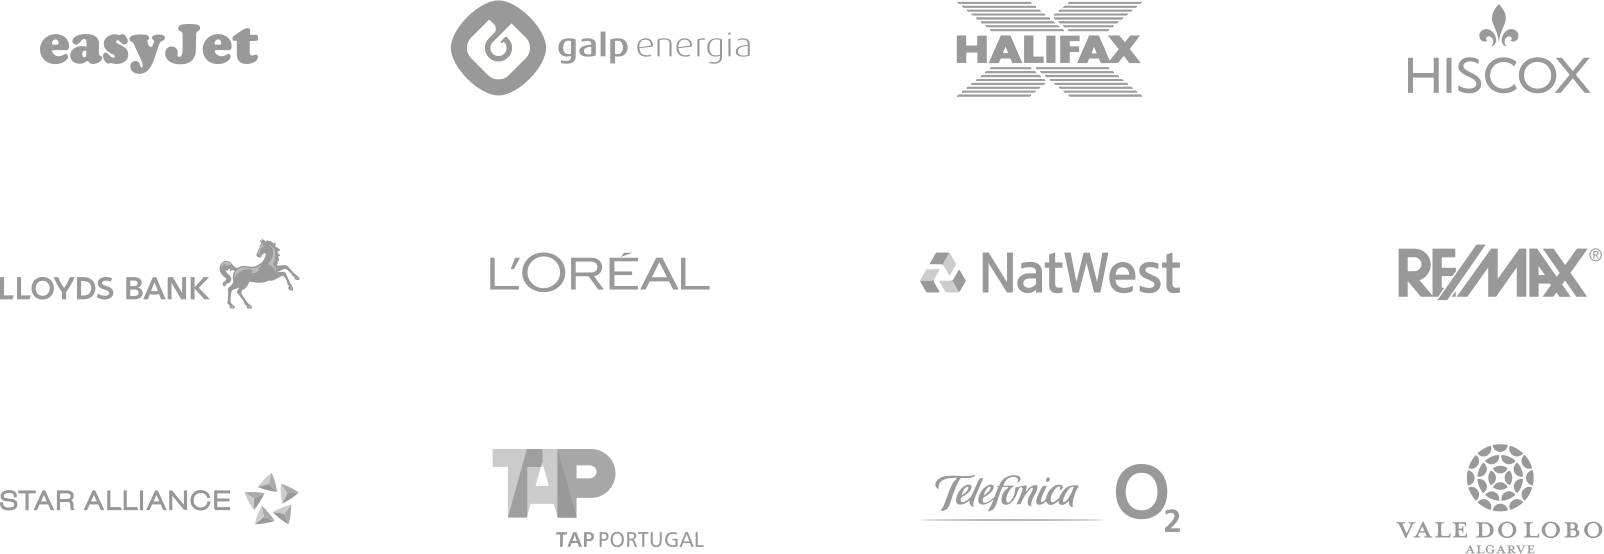 easyJet, Galp Energia, Halifax Bank, Hiscox, Lloyds Bank, L'Oréal, Mondelez, NatWest Bank, Remax, Star Alliance, Telefónica O2, Vale do Lobo